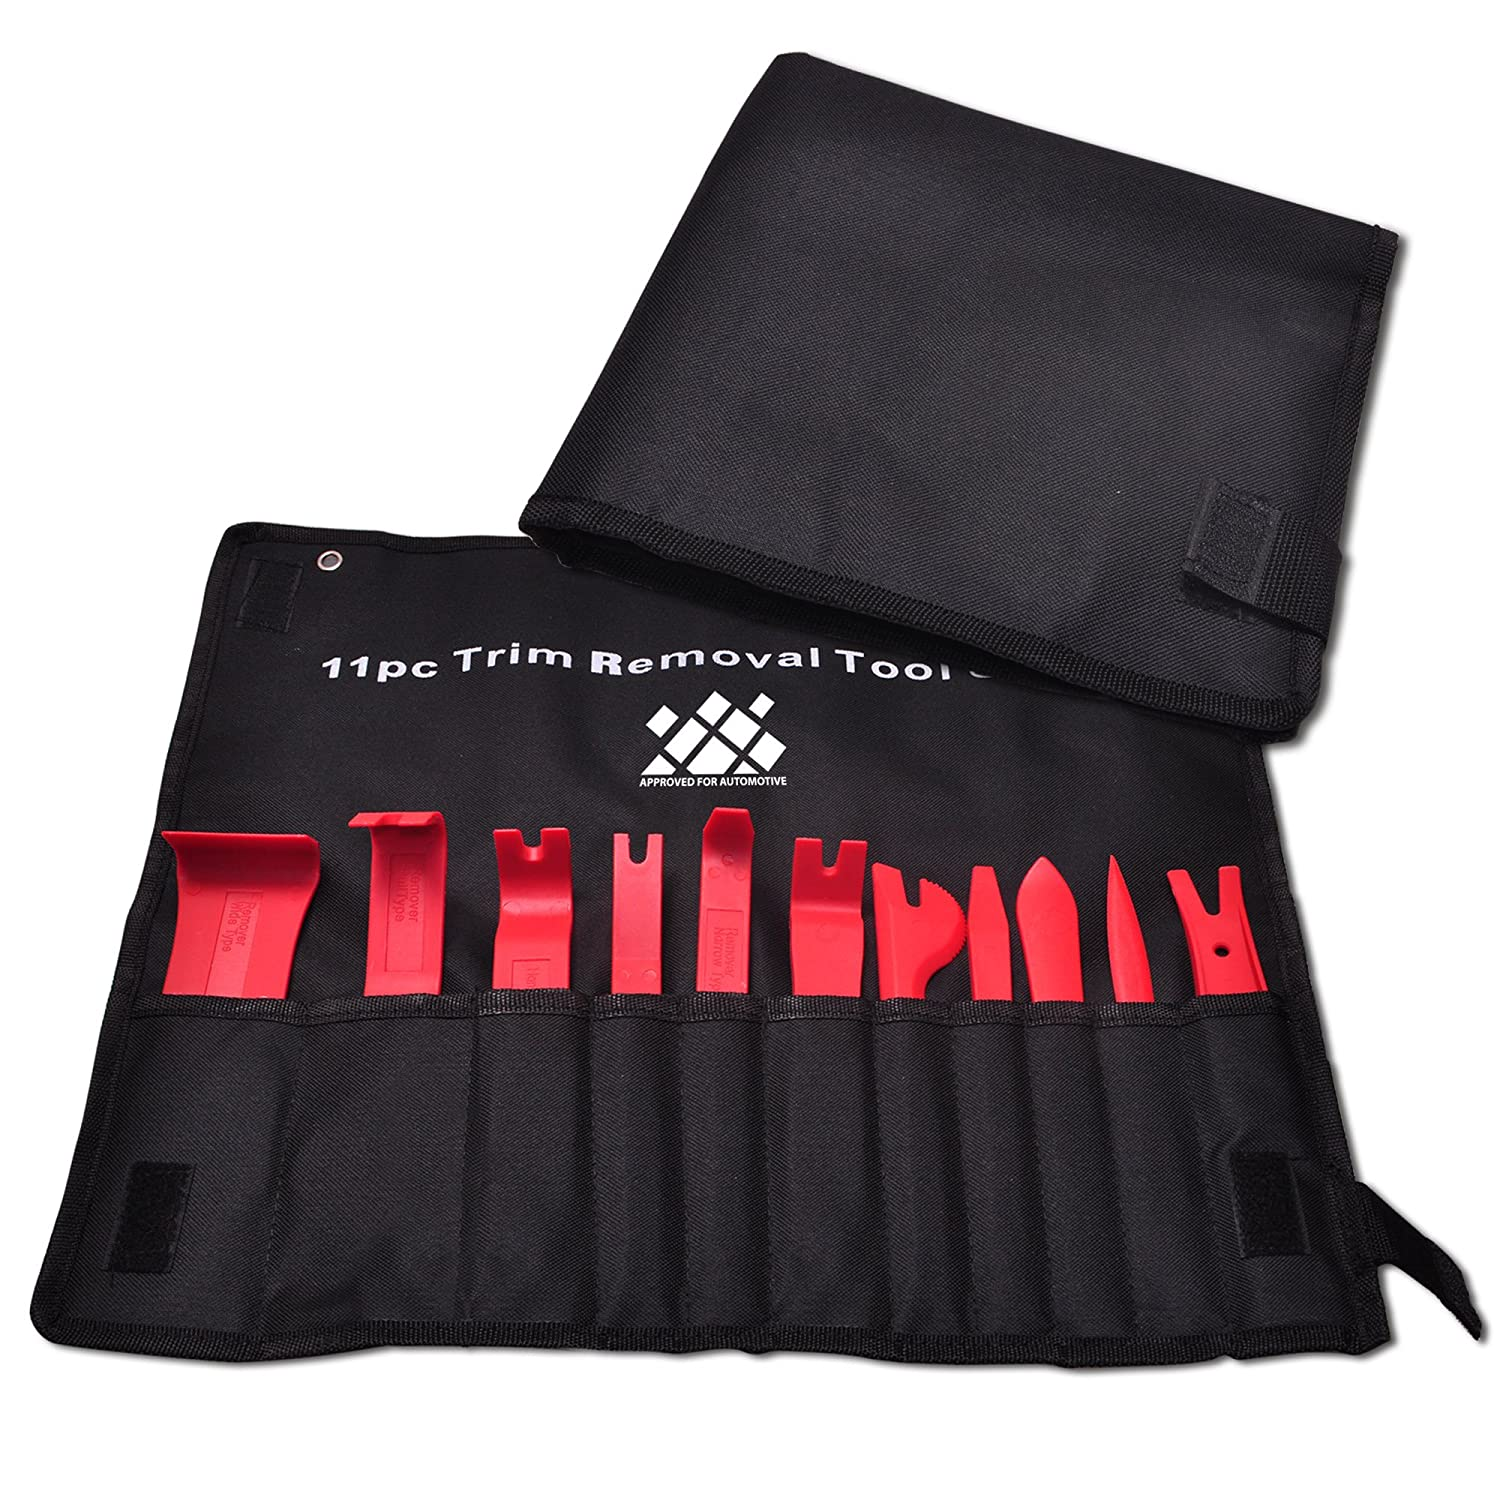 AFA Tooling Panel Removal Tool 11 pcs - Premium Auto Trim Upholstery Removal Kit - Easiest to Use Fastener Remover for Door Trim Molding Dash Panel